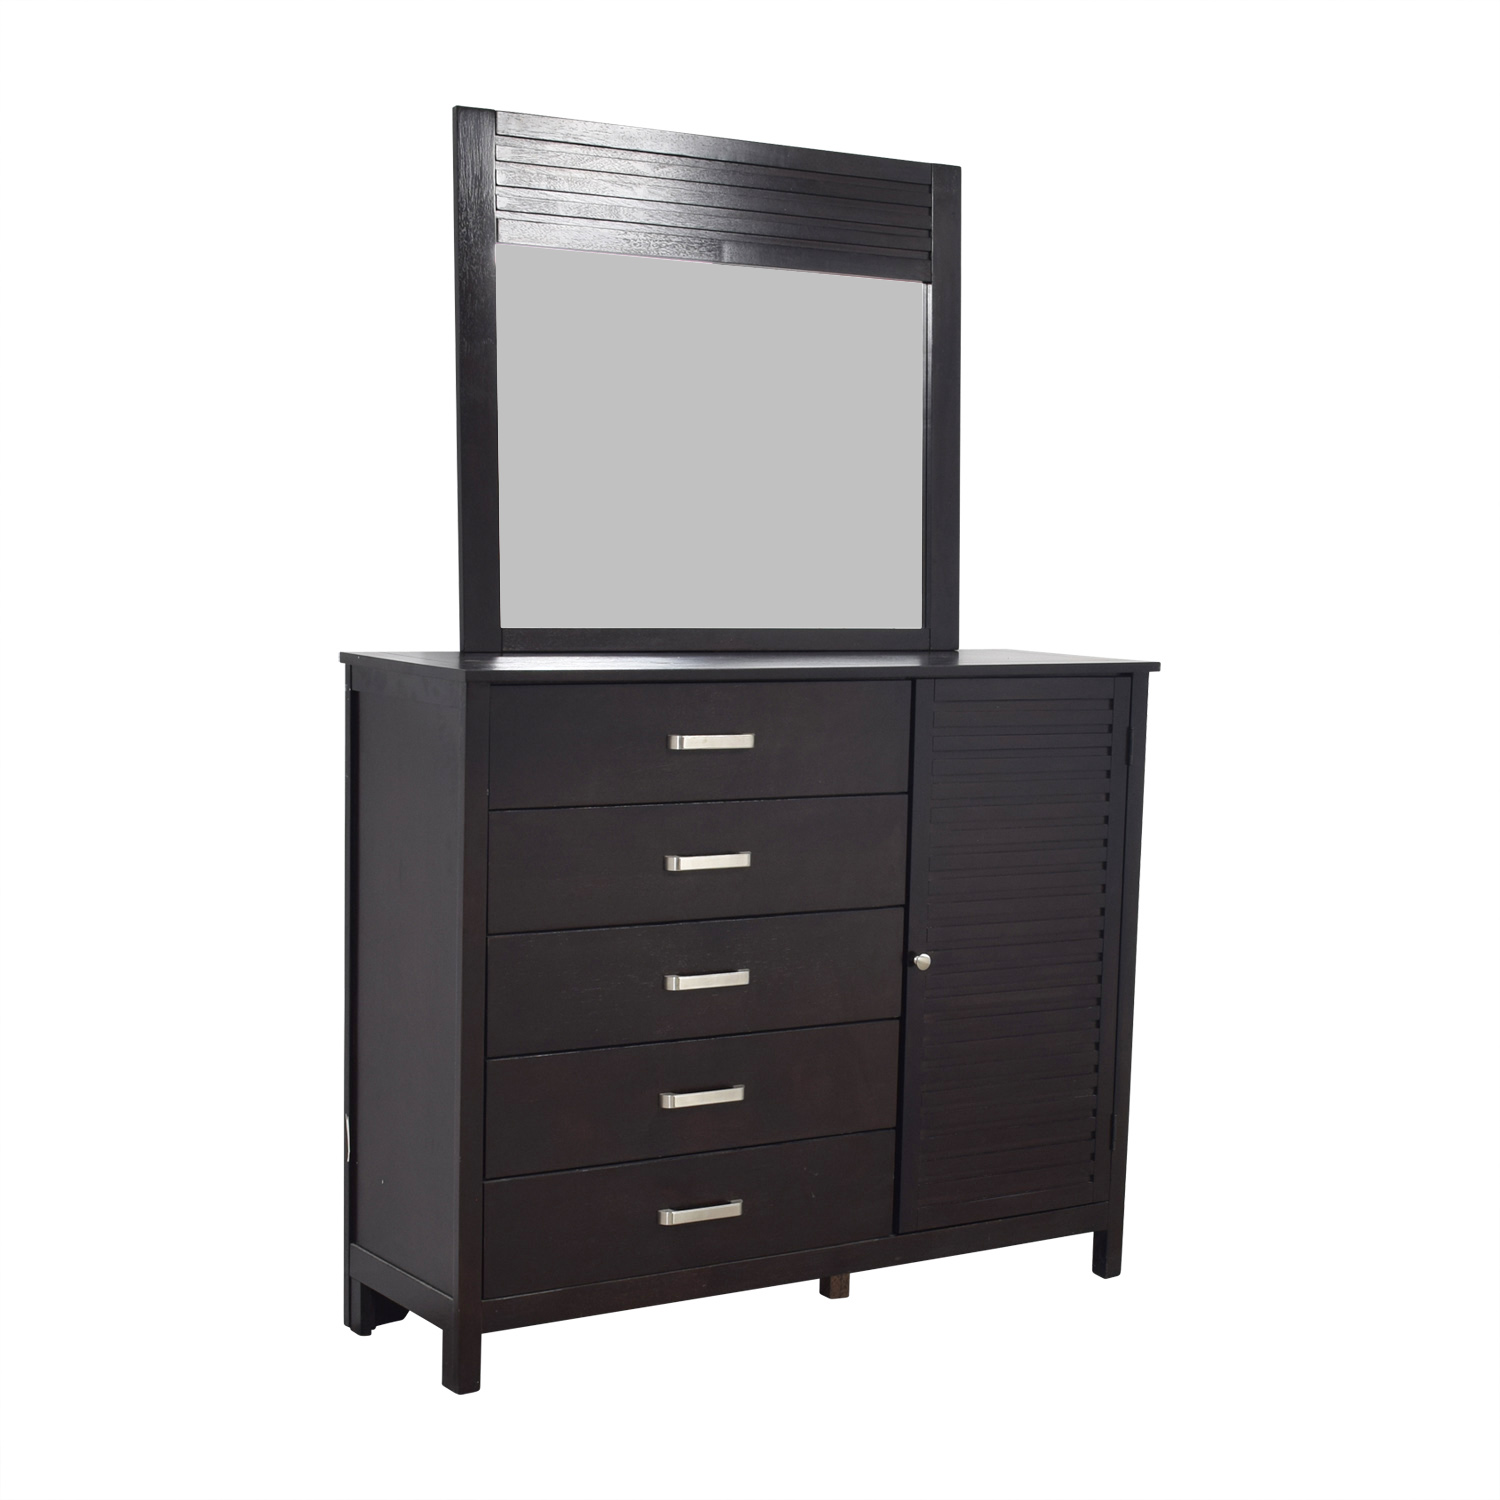 Bob's Furniture Five-Drawer Dresser with Shelf Cabinet and Mirror sale